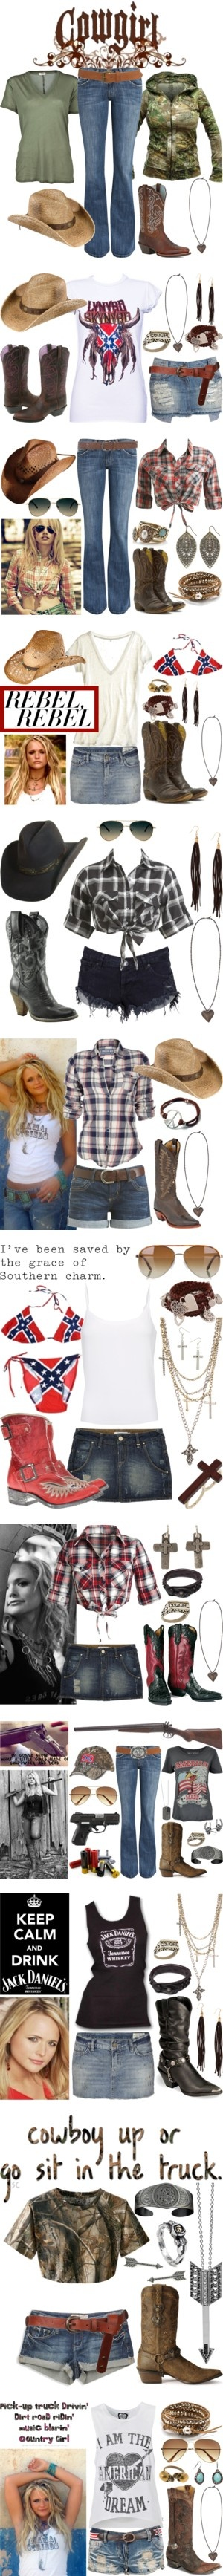 """""""Country Strong"""" by msjackiedaniels ❤ liked on Polyvore"""